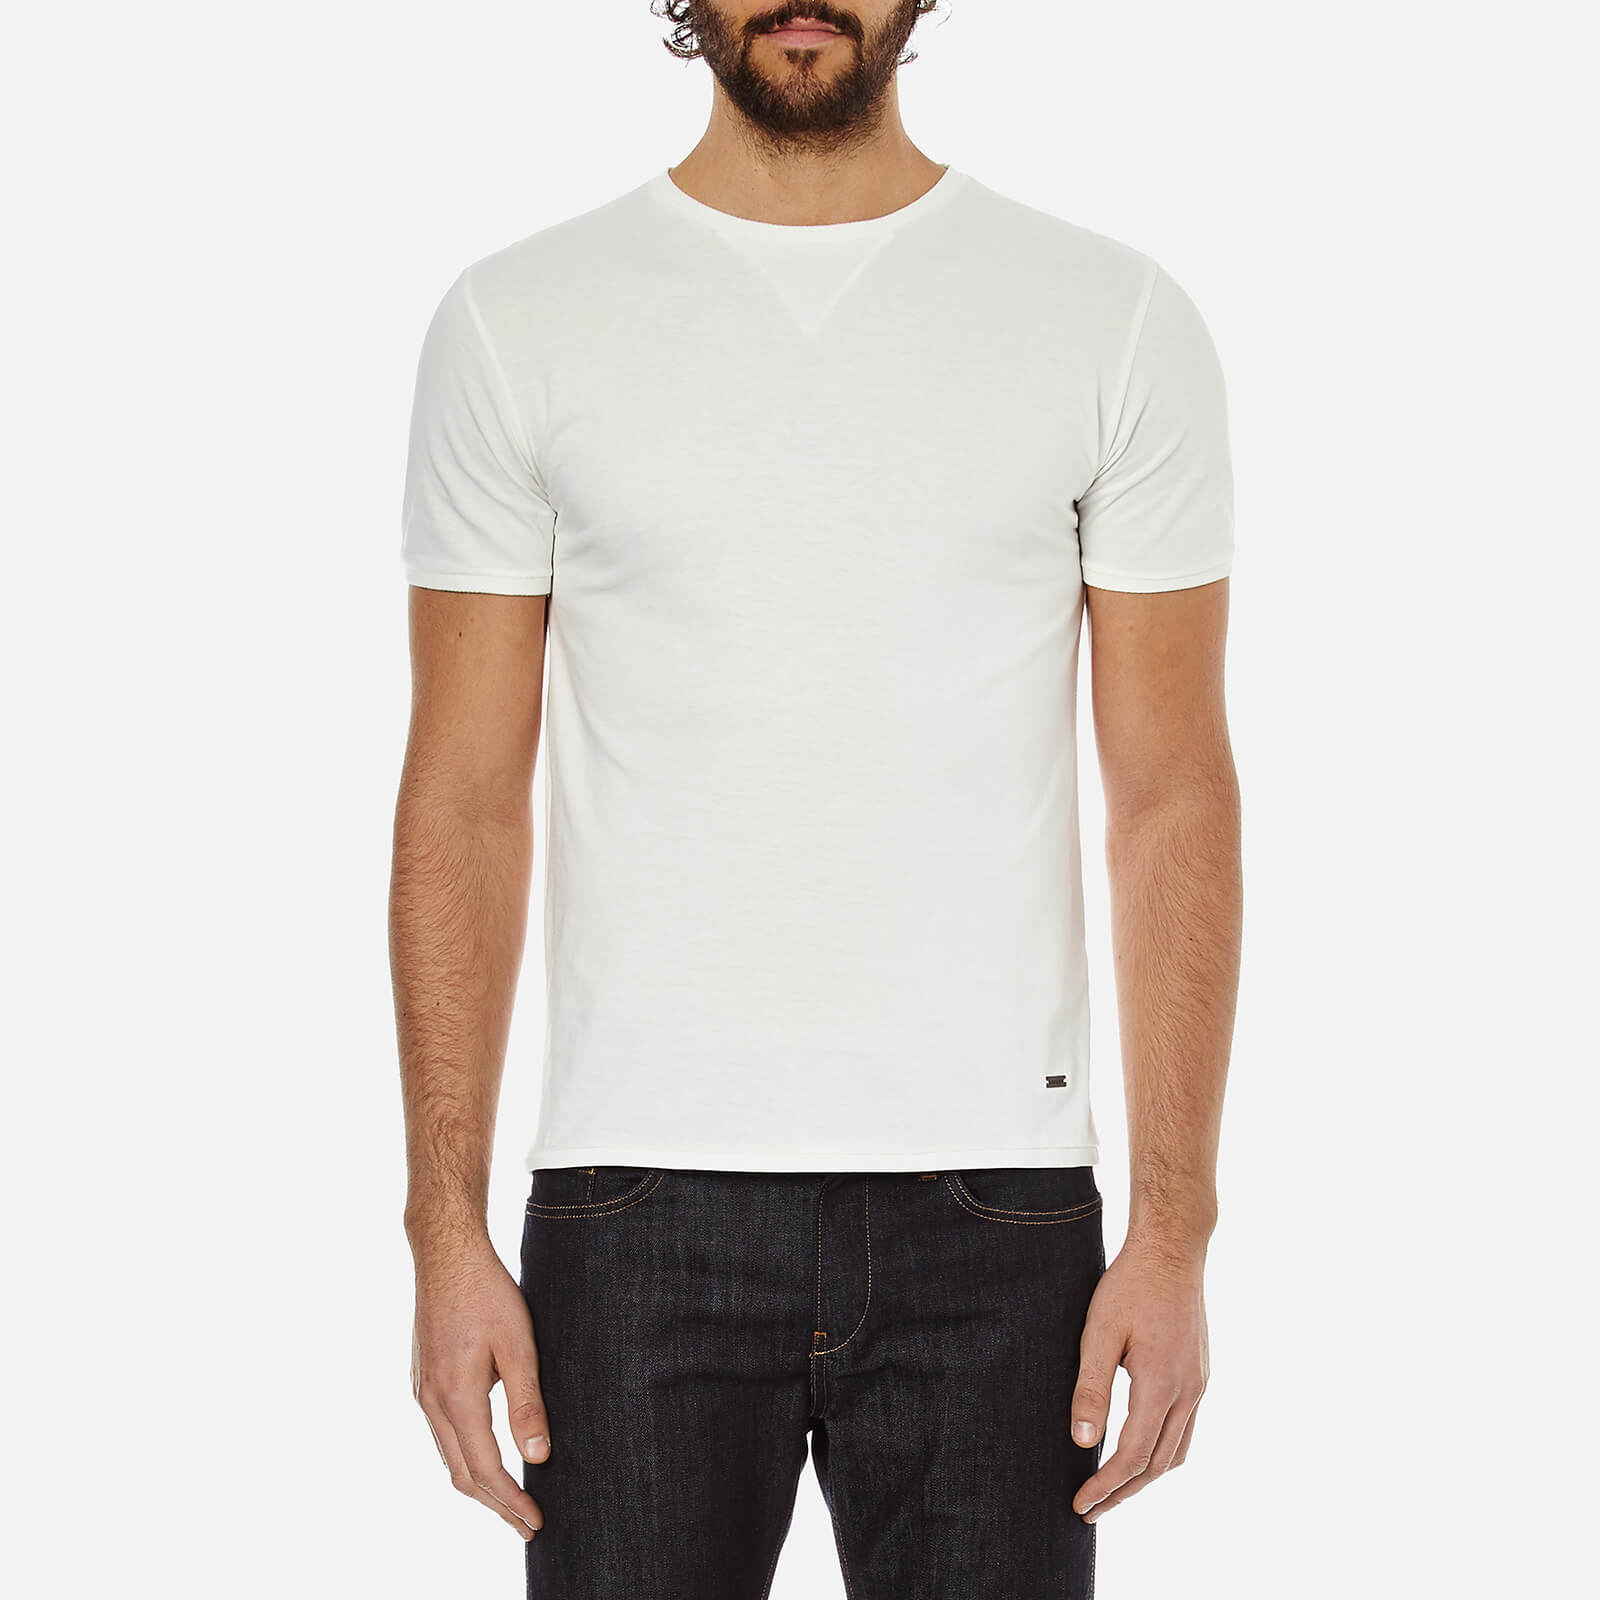 3a5f3aa10 BOSS Orange Men's Toern Collar Detail T-Shirt - White - Free UK Delivery  over £50